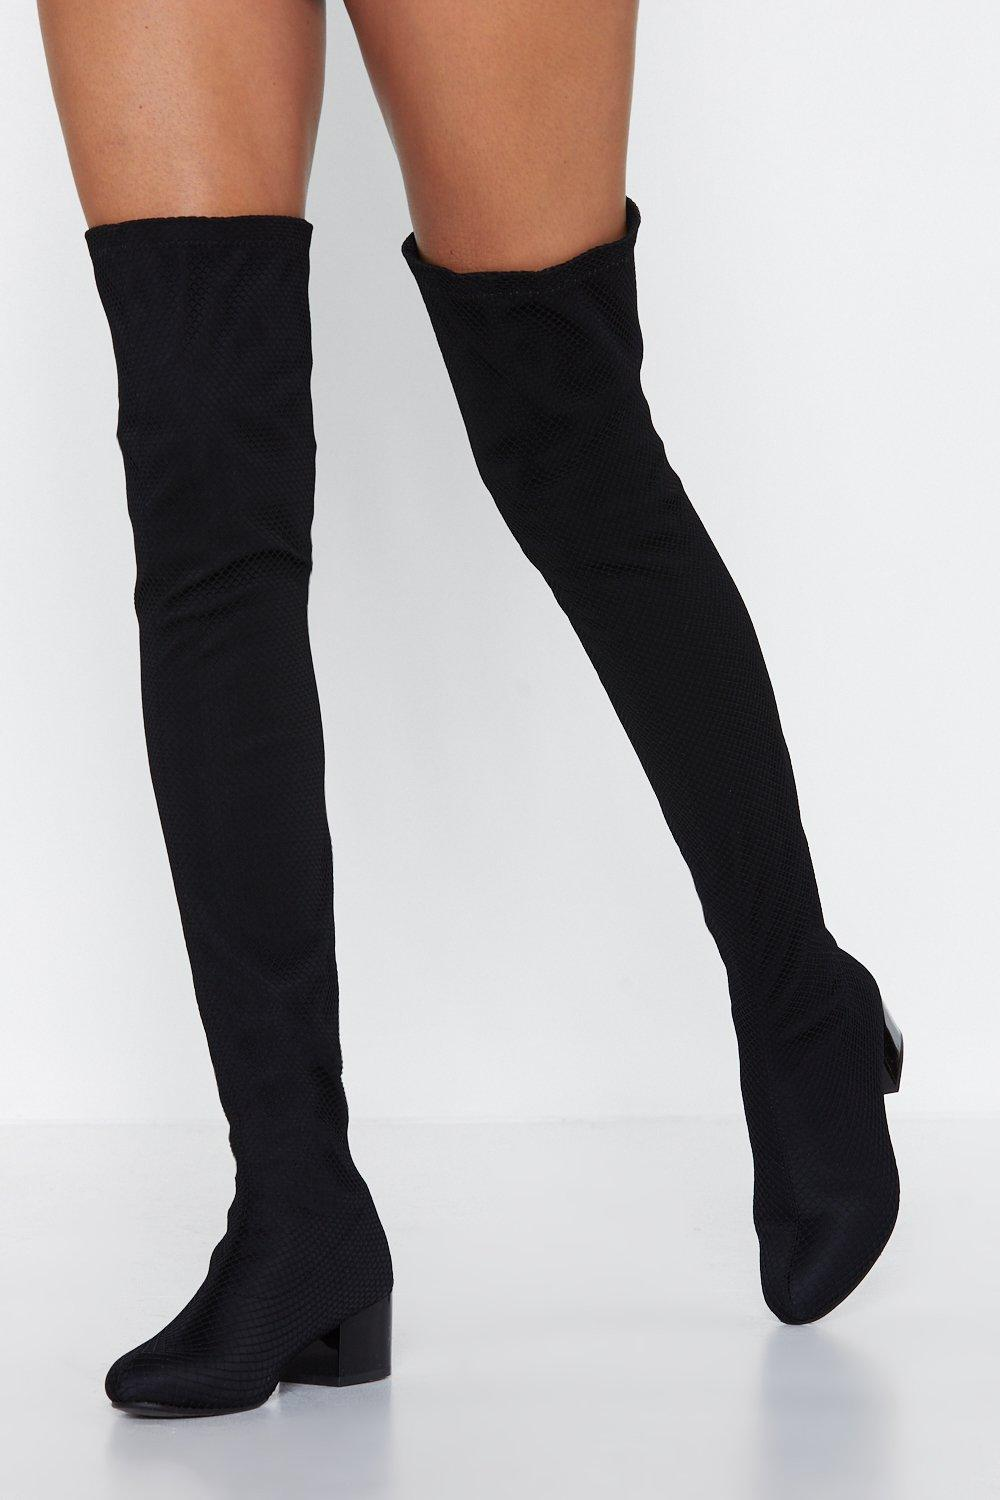 Thigh high boots heels